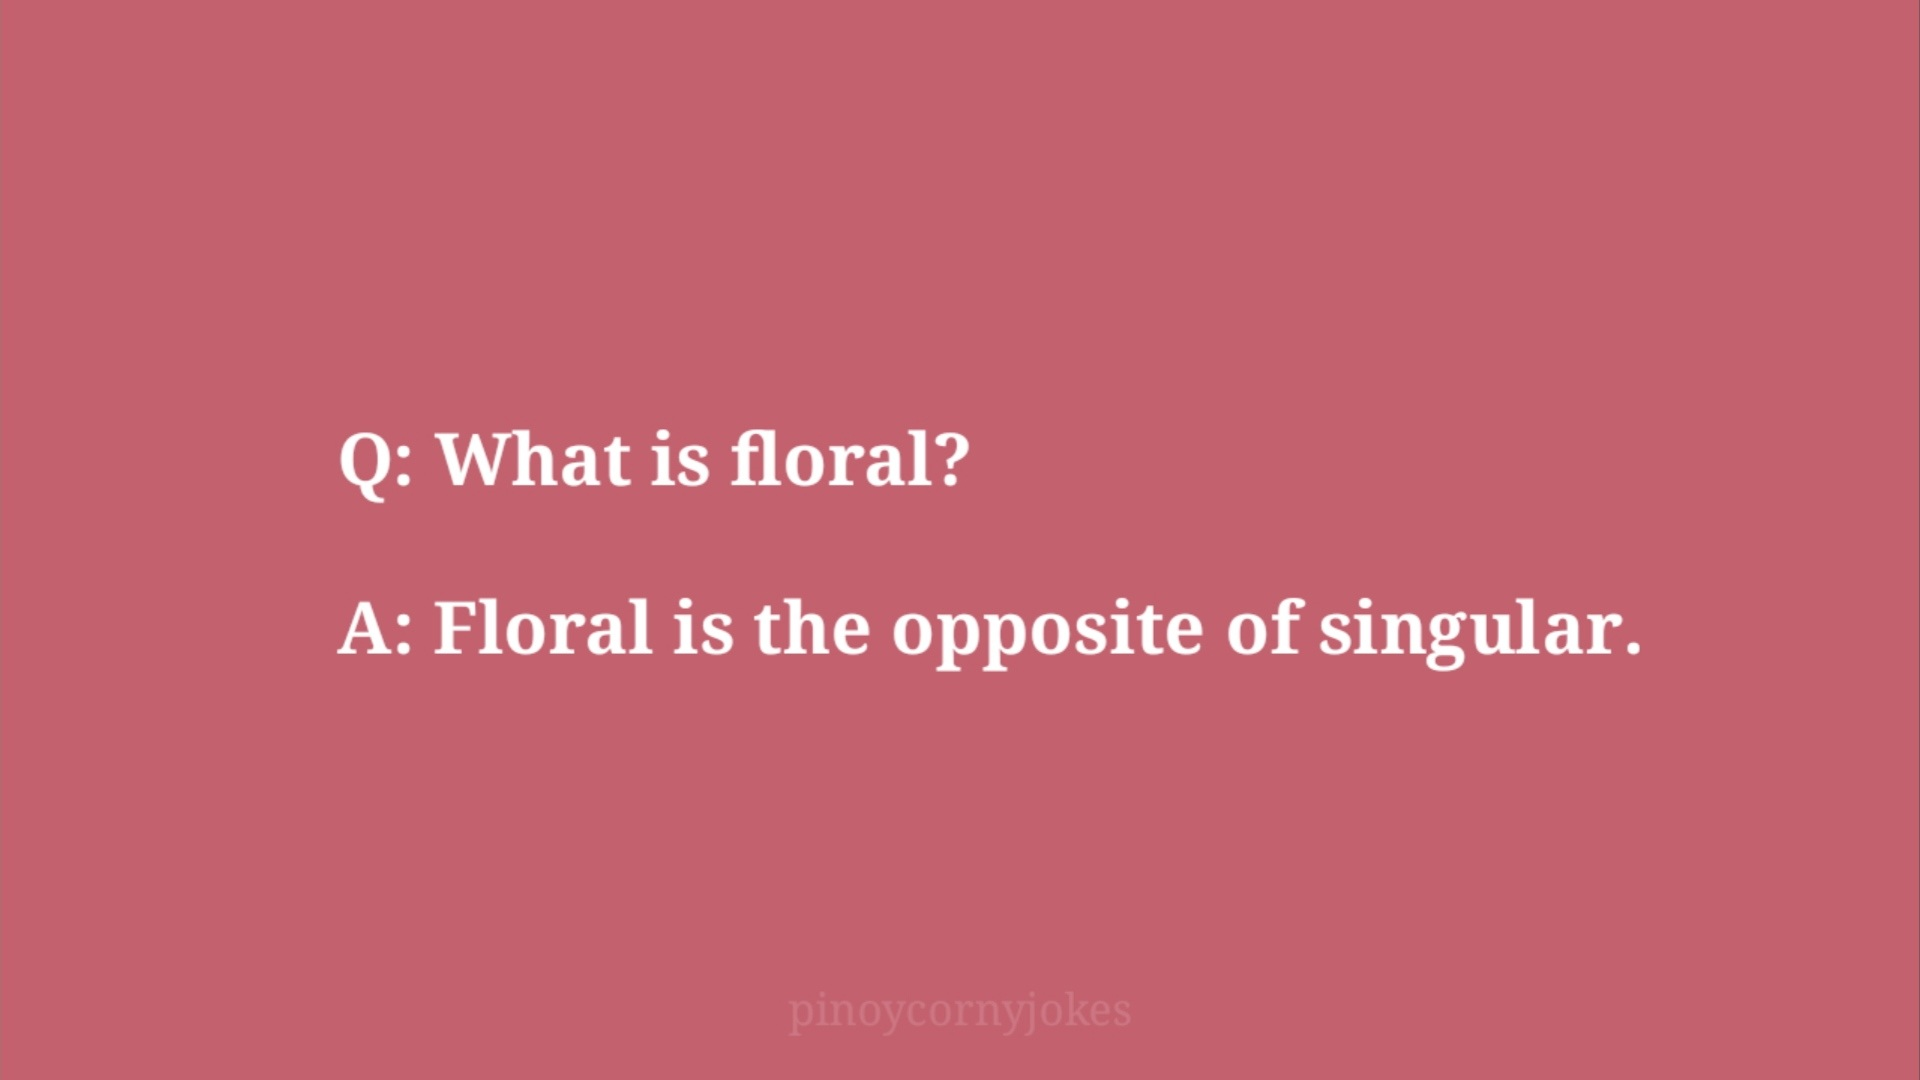 floral jokes time question and answer